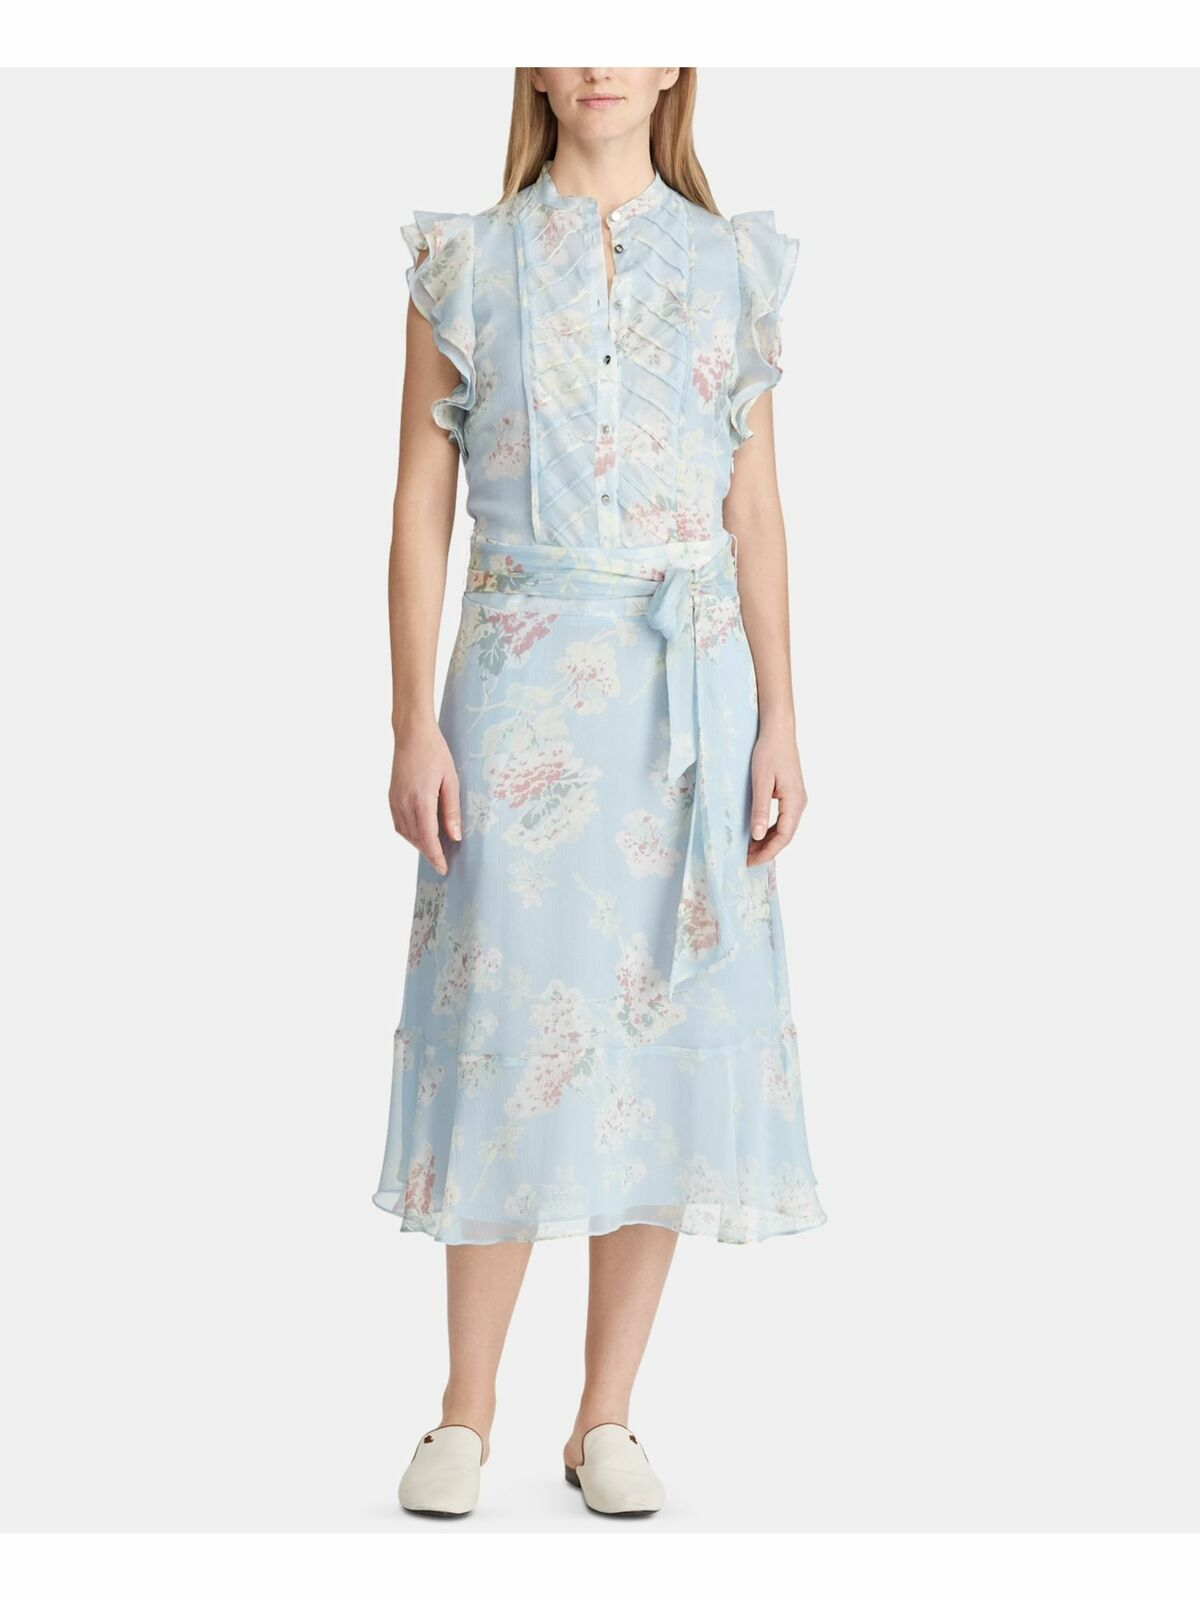 Ralph Lauren - Blue Floral Ruffled Sleeves Shift Party Dress